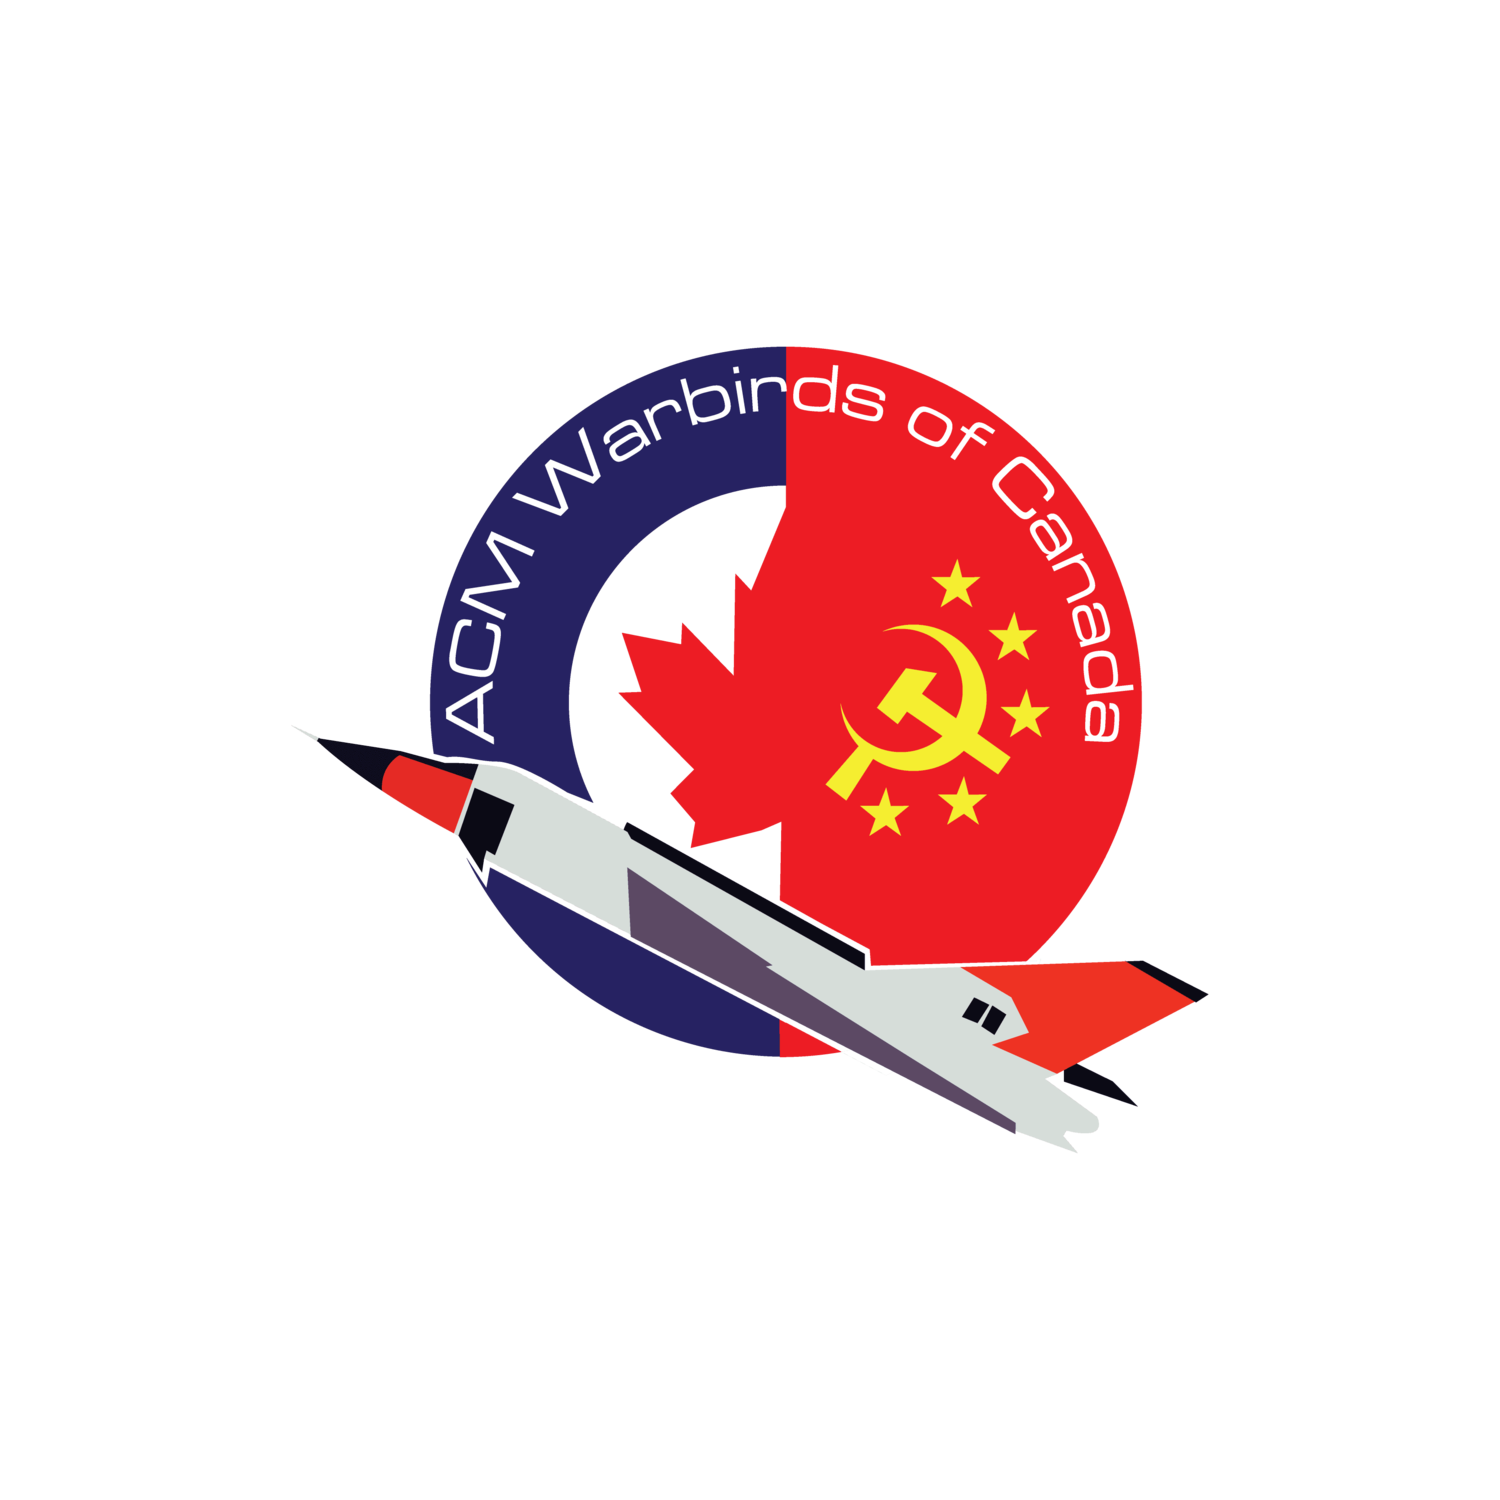 ACM WARBIRDS of CANADA